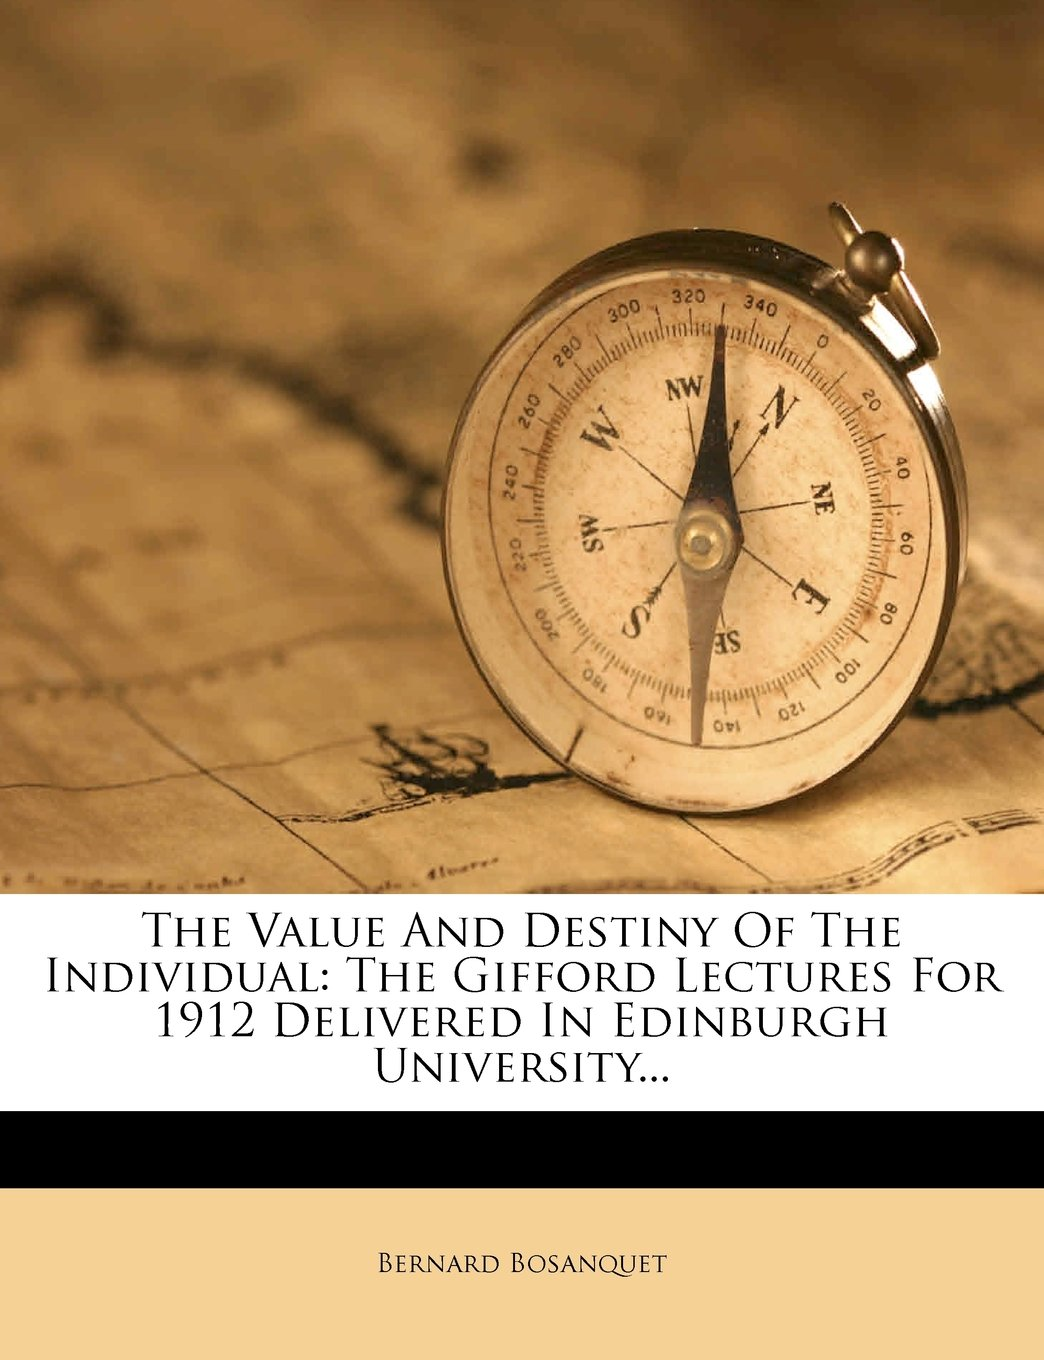 Download The Value And Destiny Of The Individual: The Gifford Lectures For 1912 Delivered In Edinburgh University... PDF